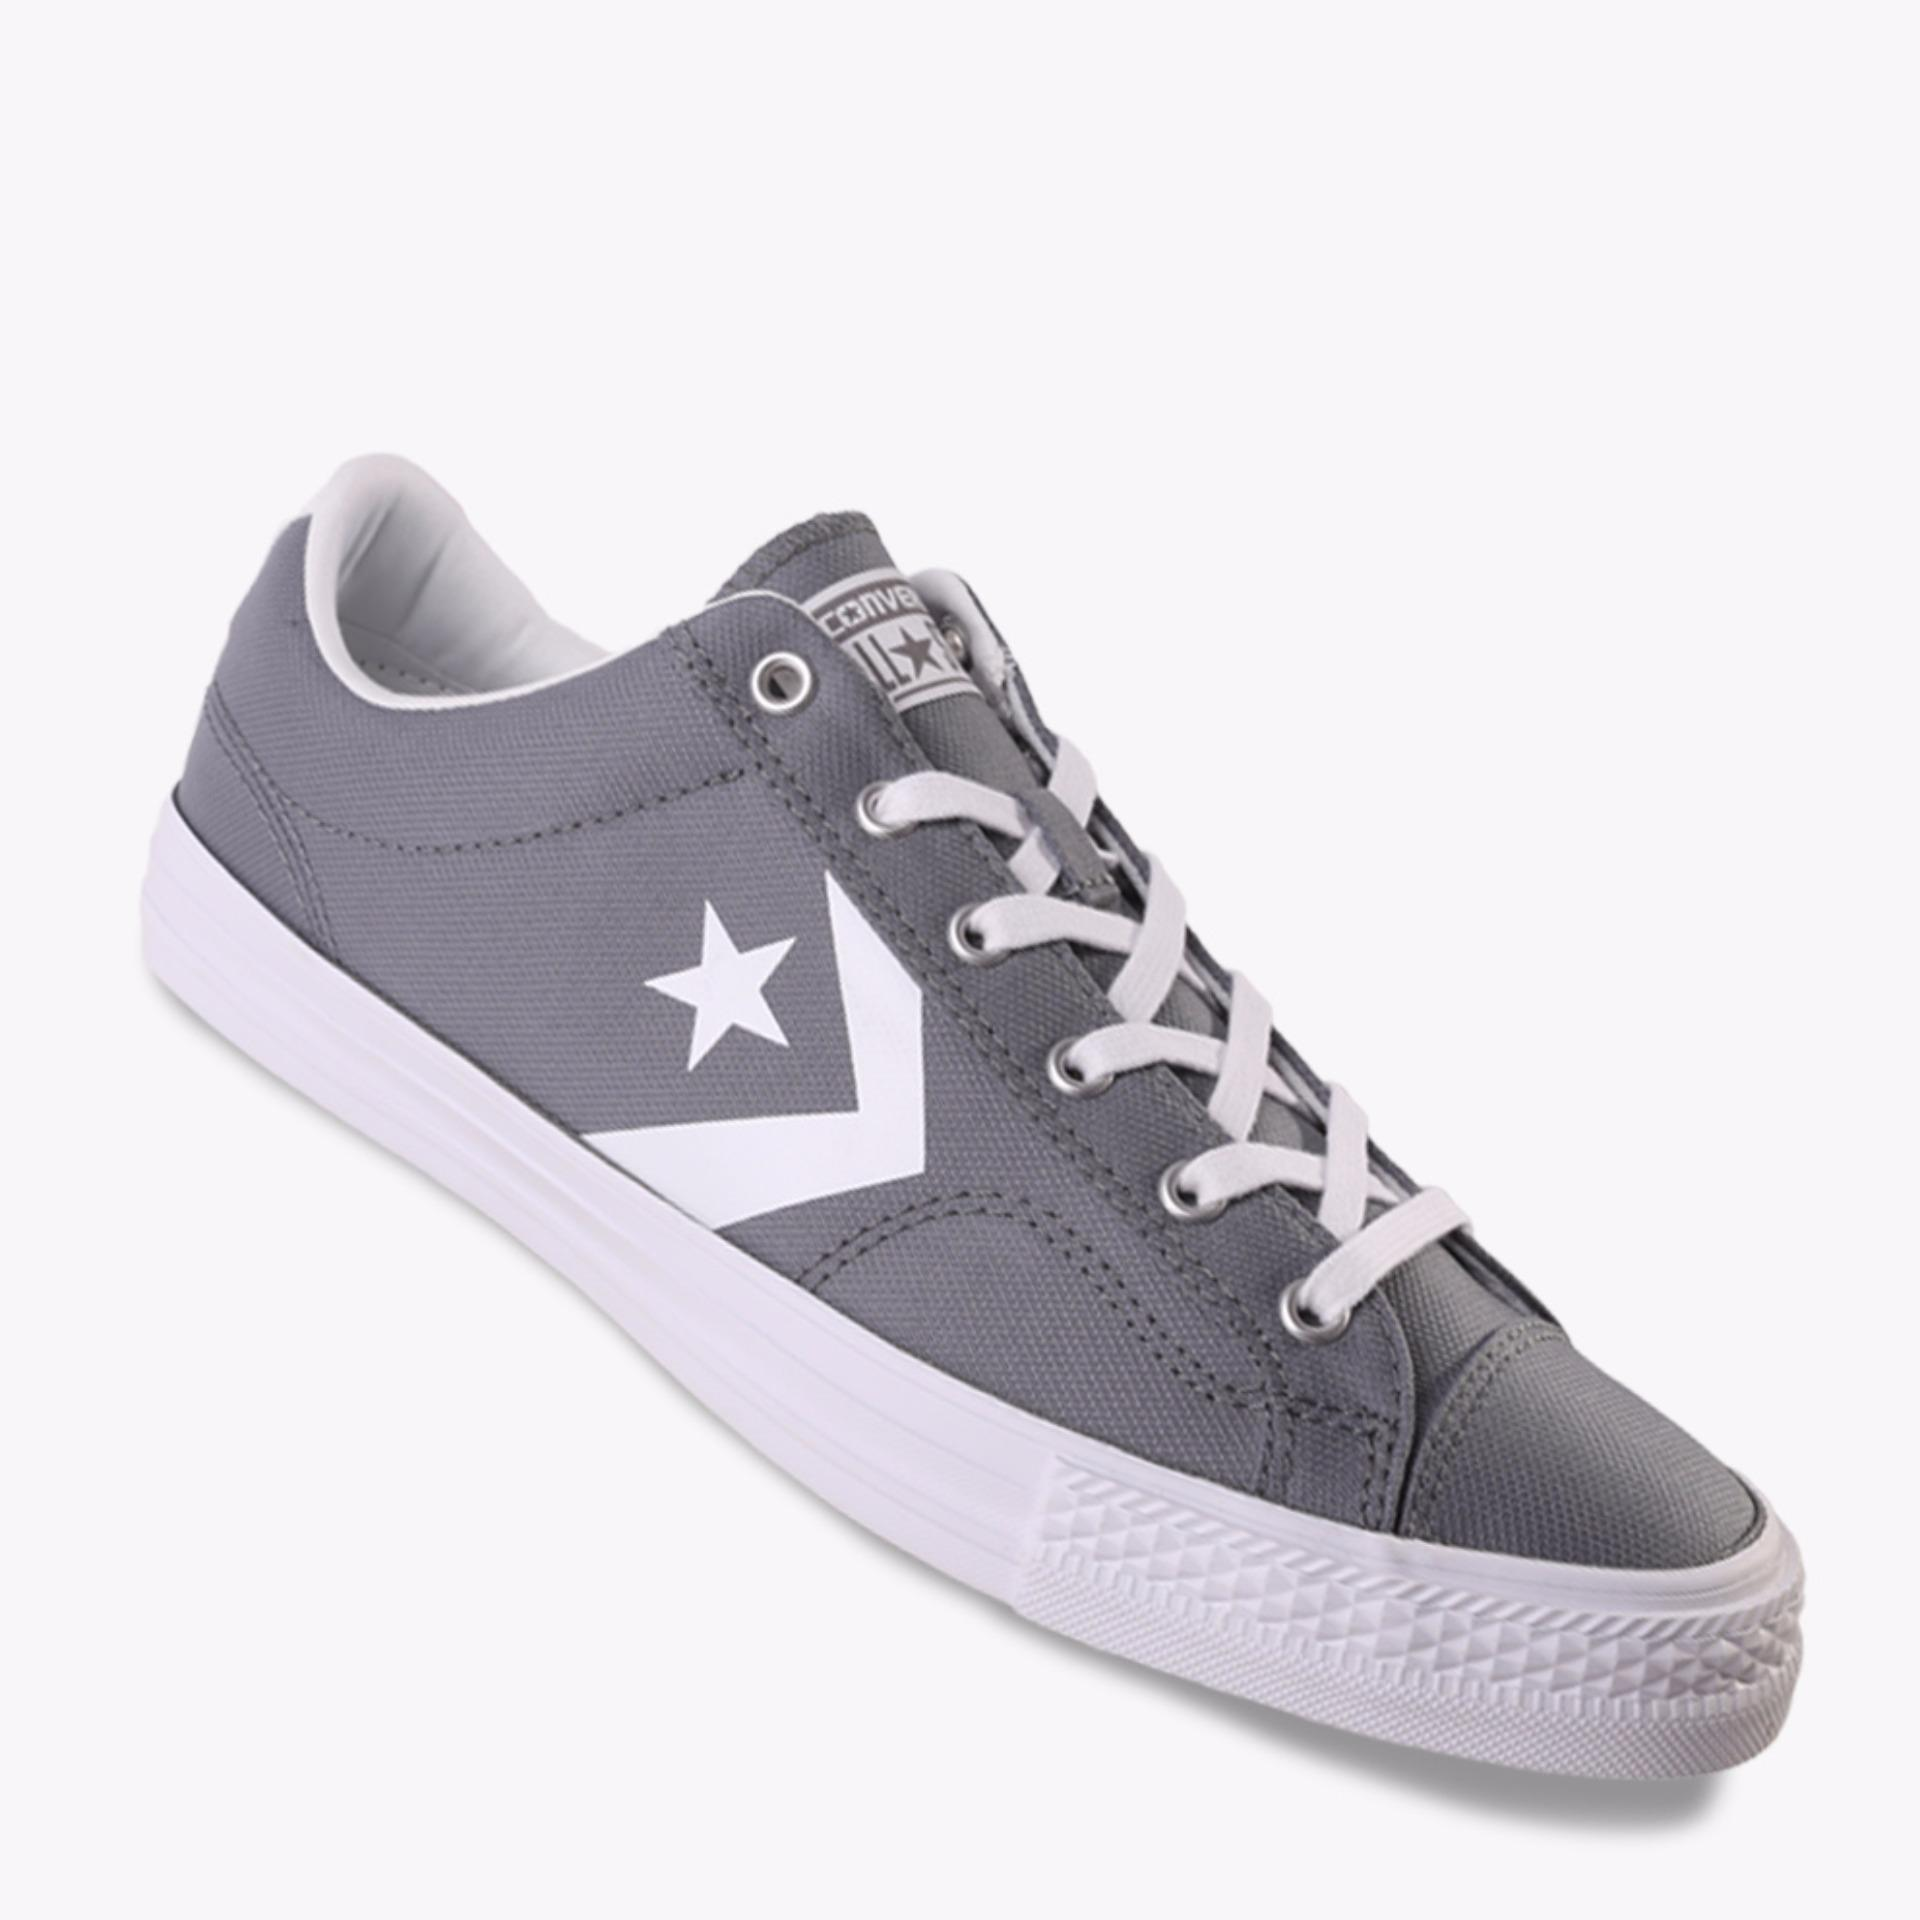 Diskon Converse Star Player Ox Men S Sneakers Abu Abu